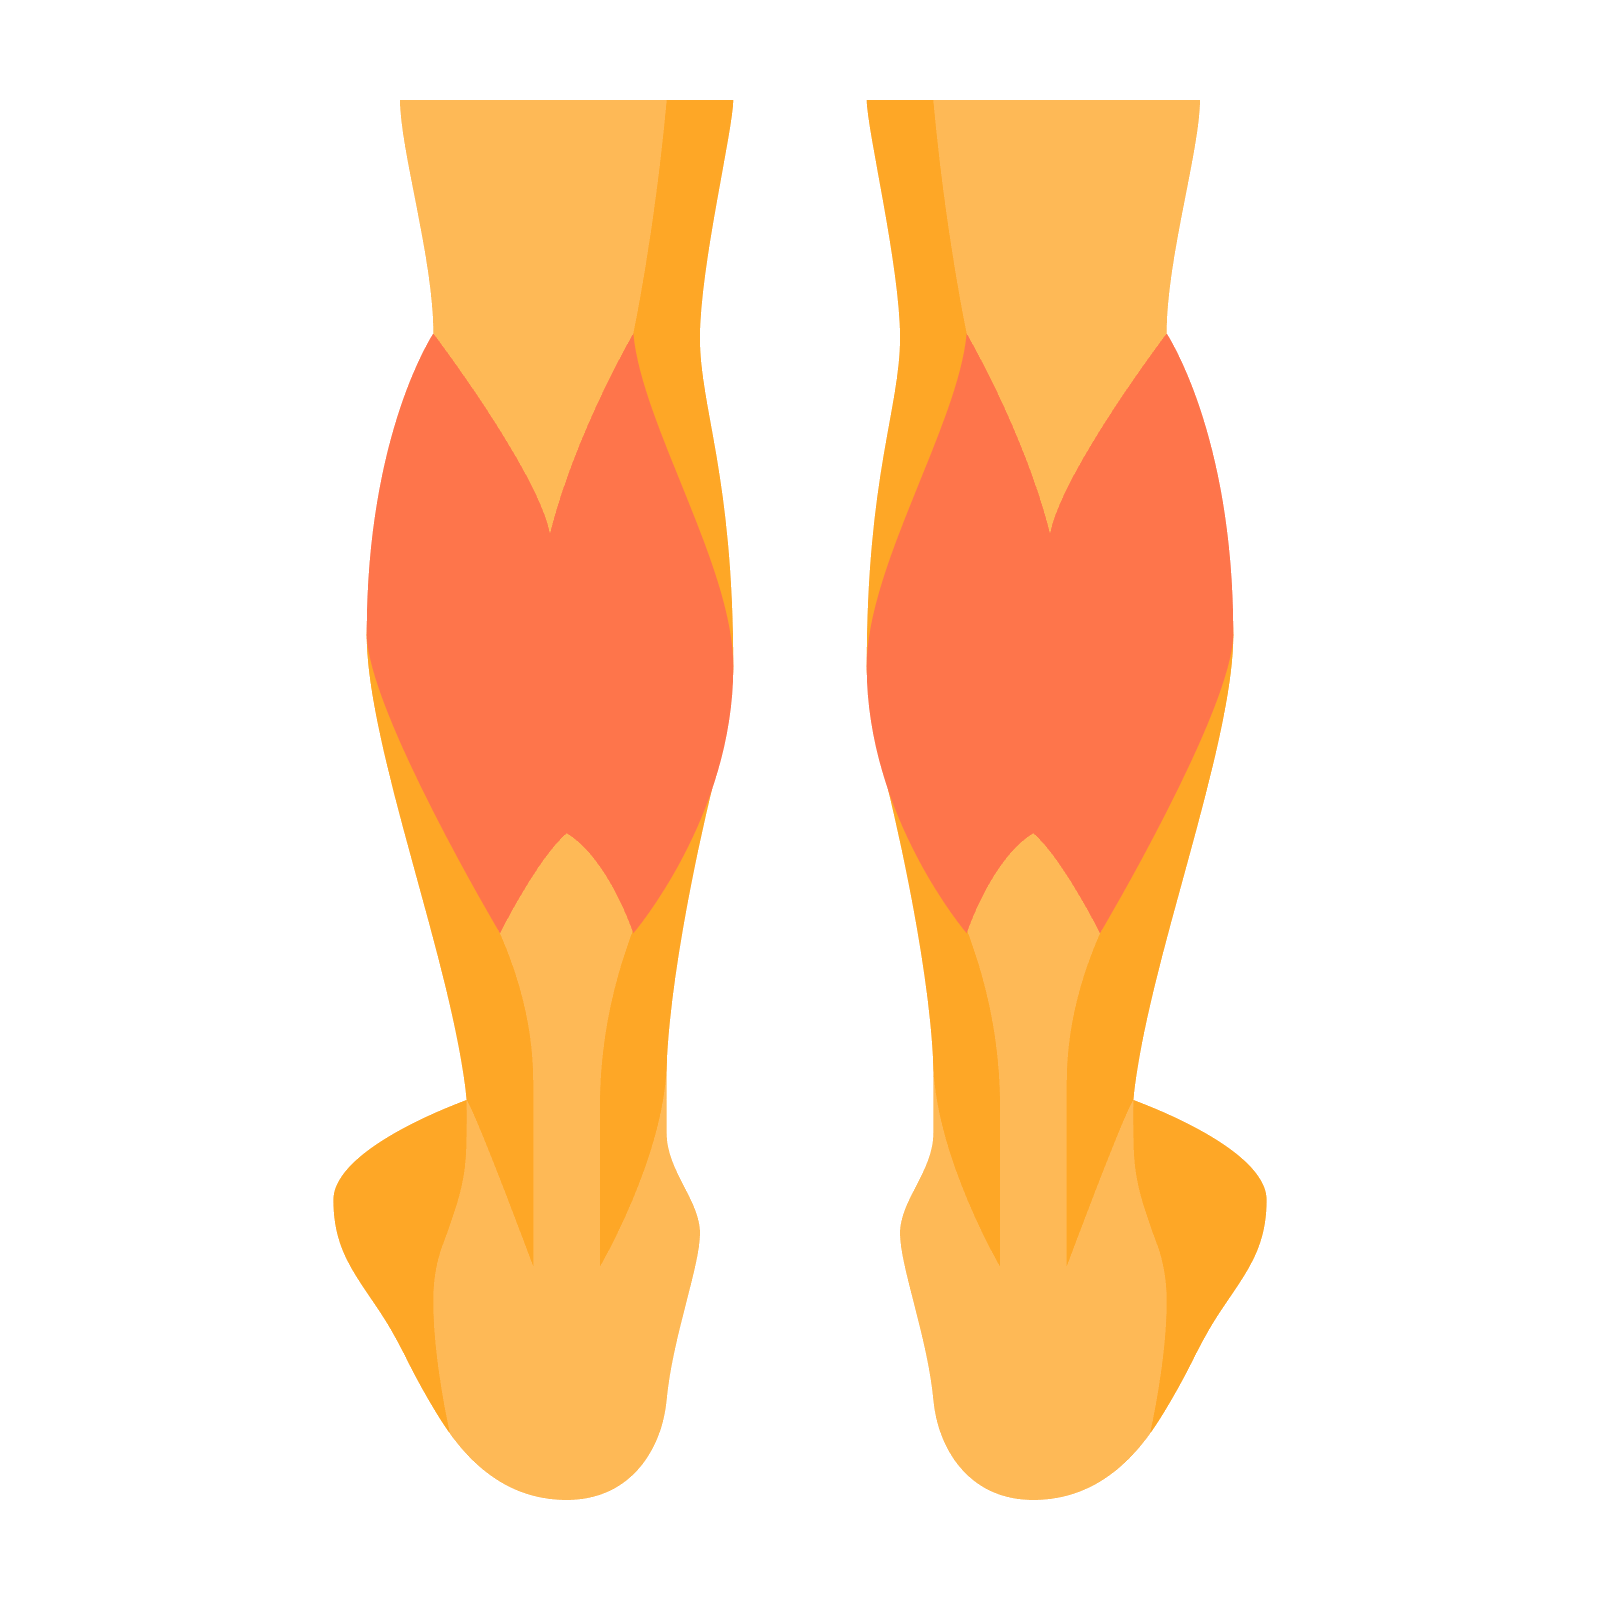 Legs vector png. Calves icon free download